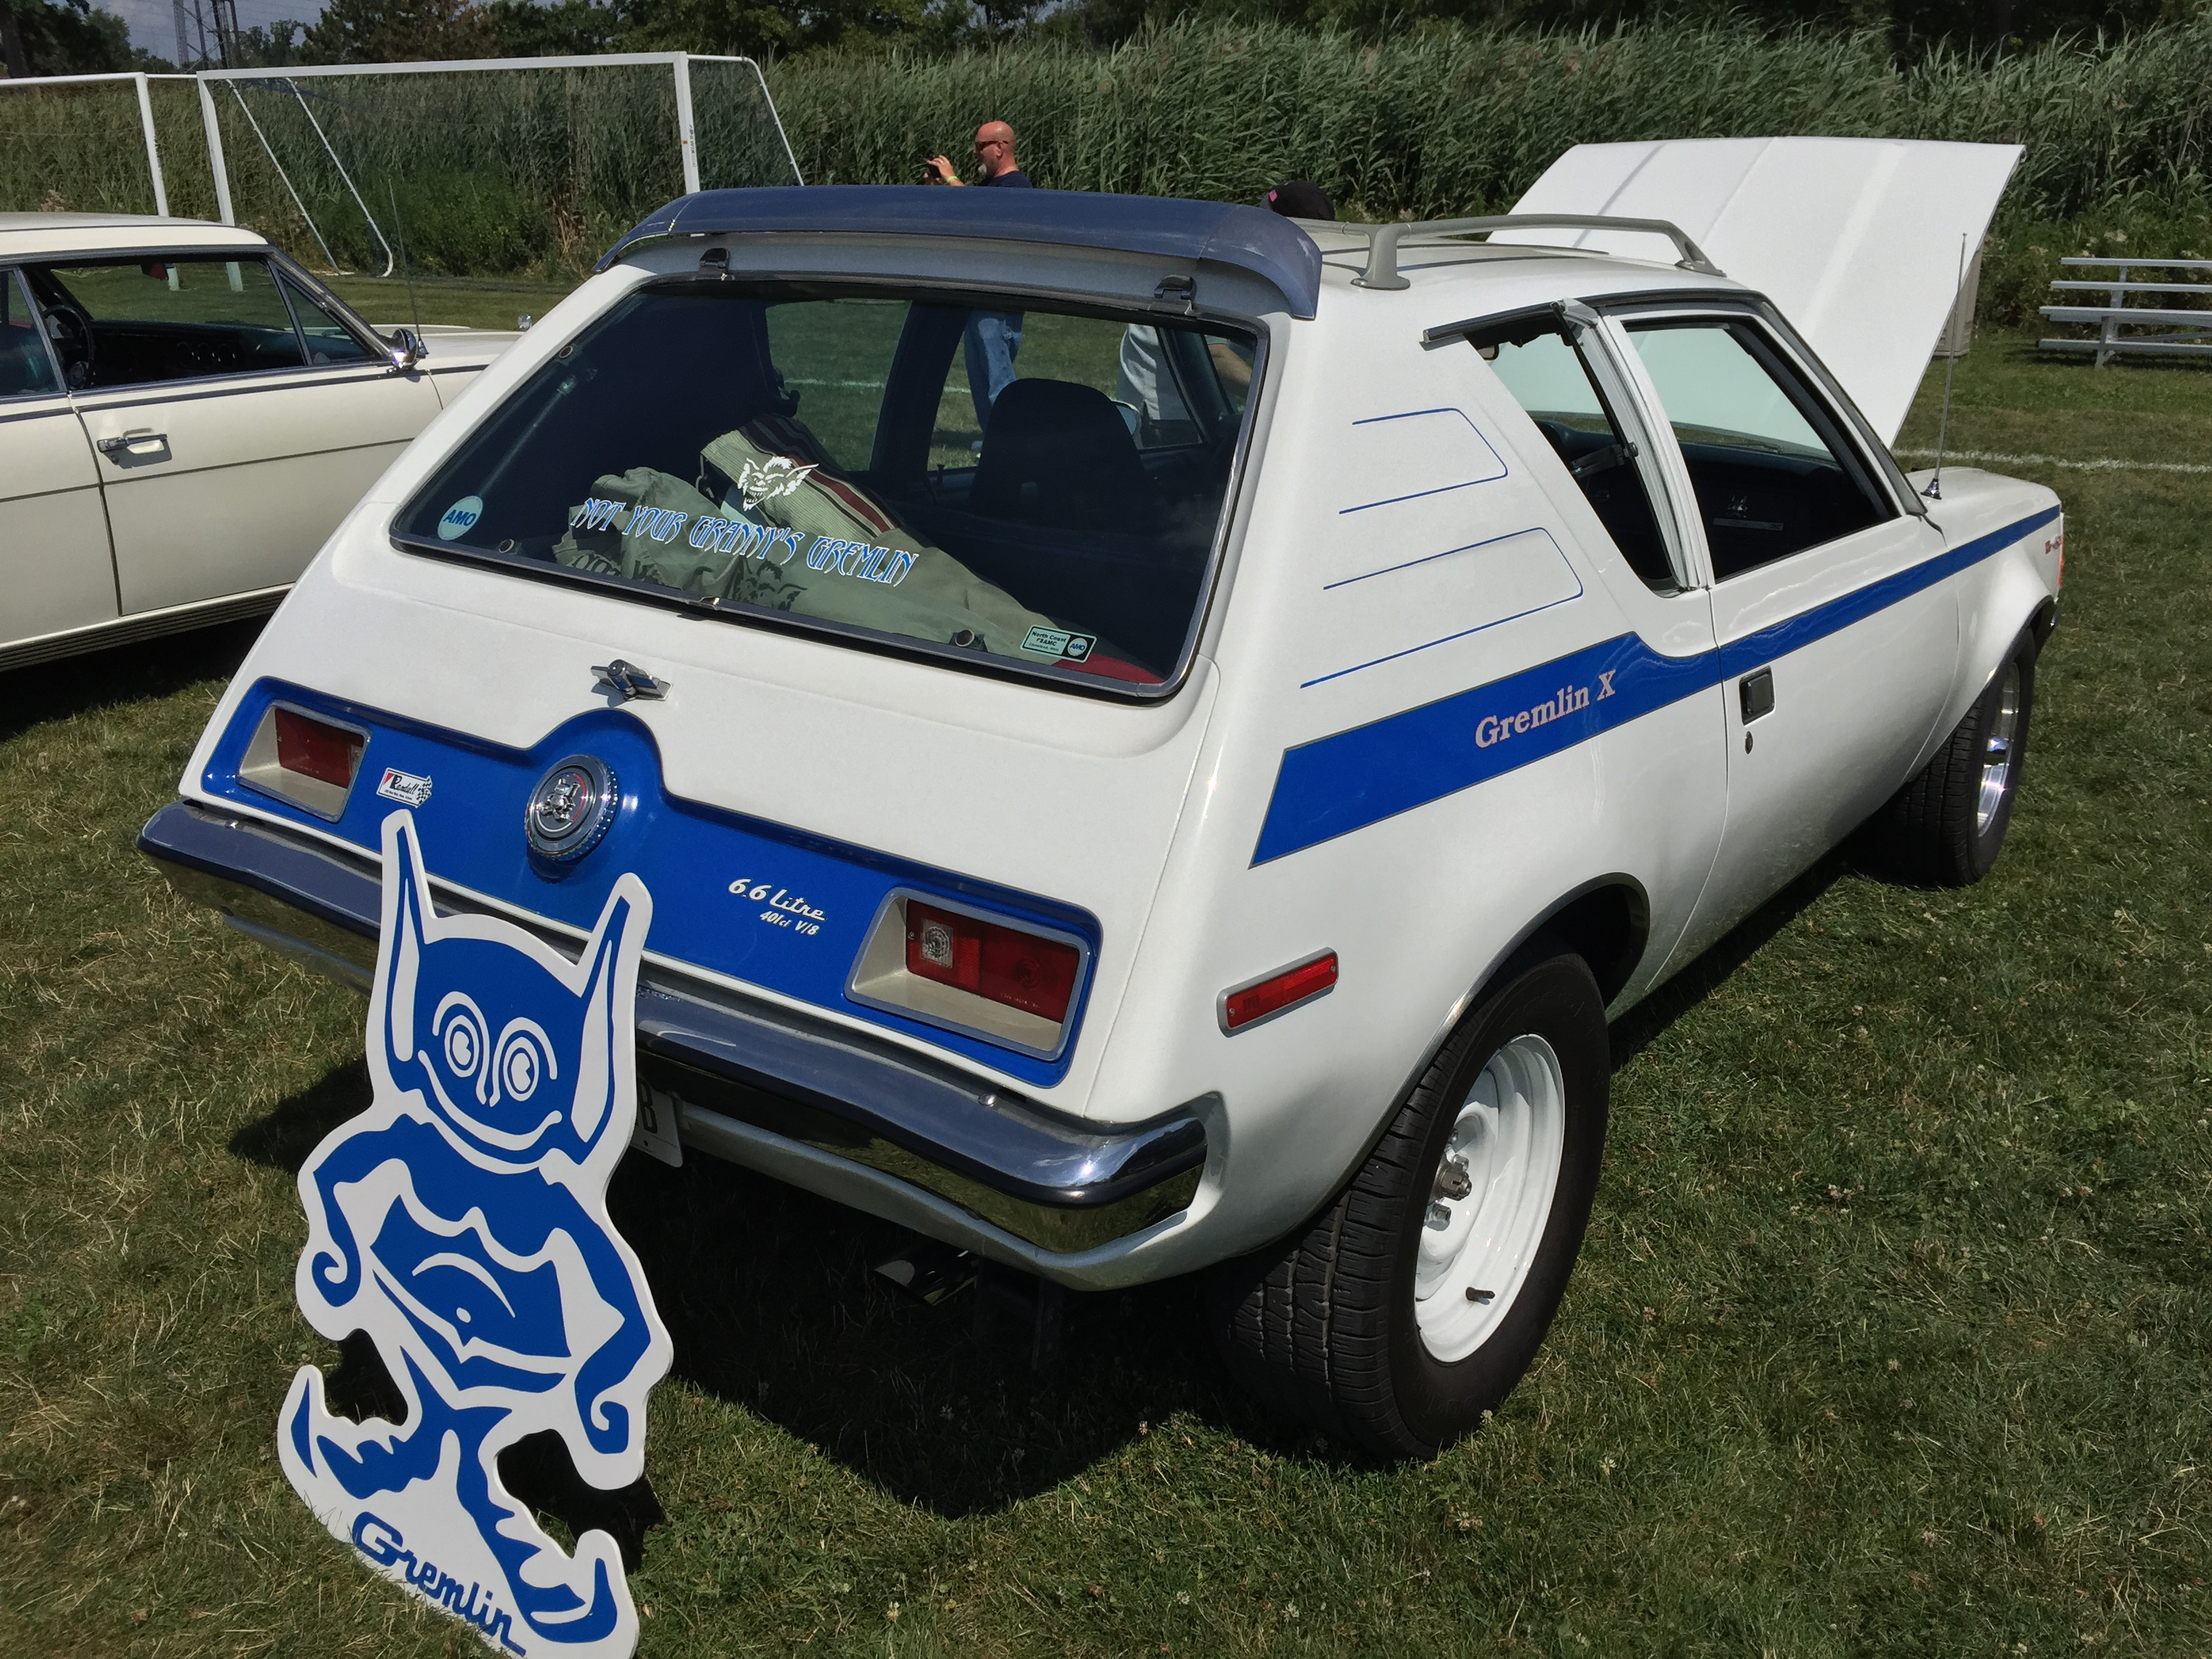 file 1972 amc gremlin built as randall 401 xr modification with 6 6